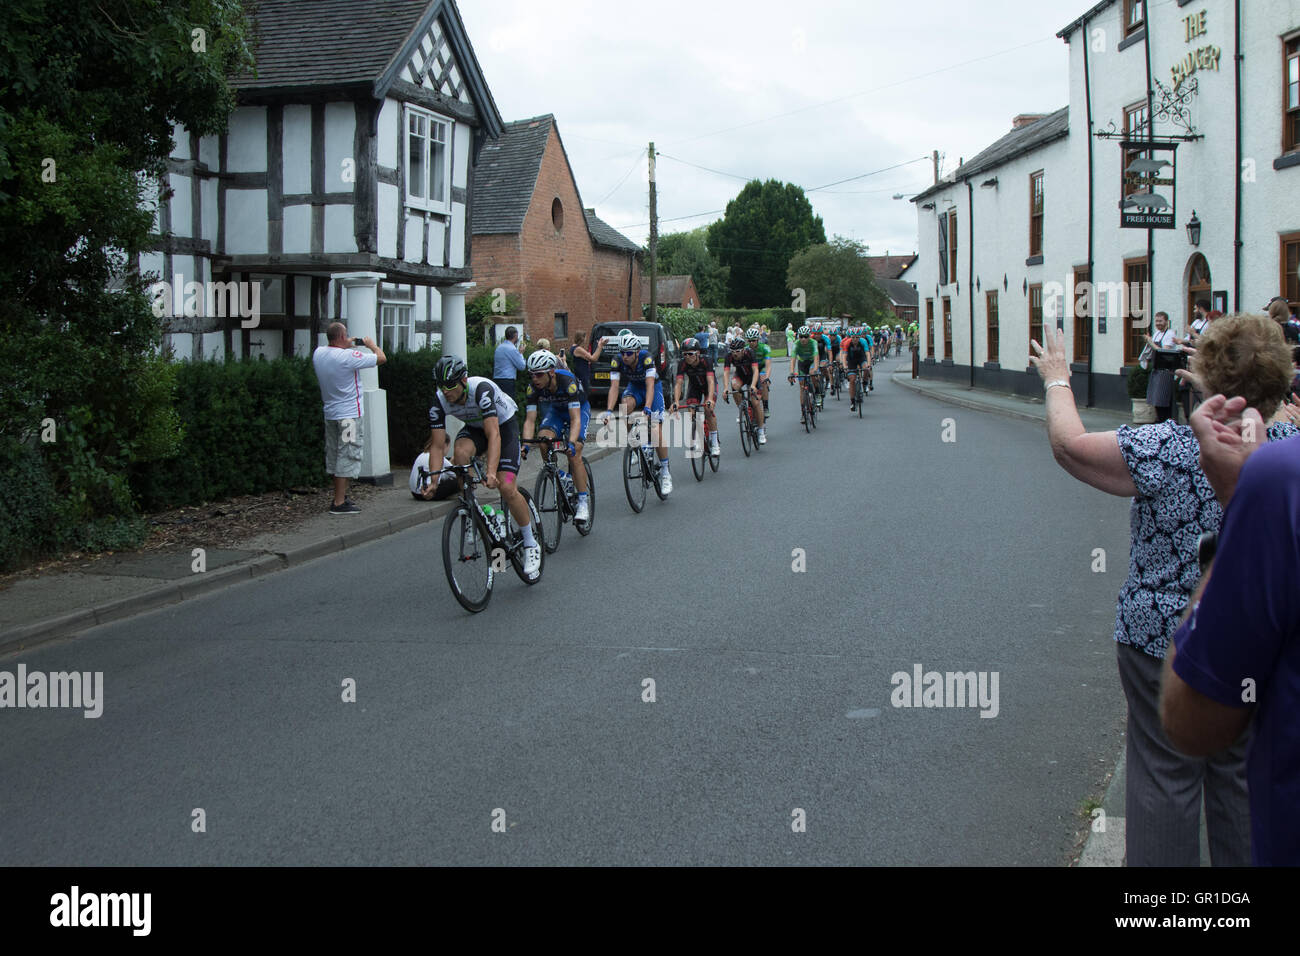 Cheshire, UK. 6th September, 2016. Peloton early in the race, passing through Church Minshull in the Cheshire plain. Stock Photo